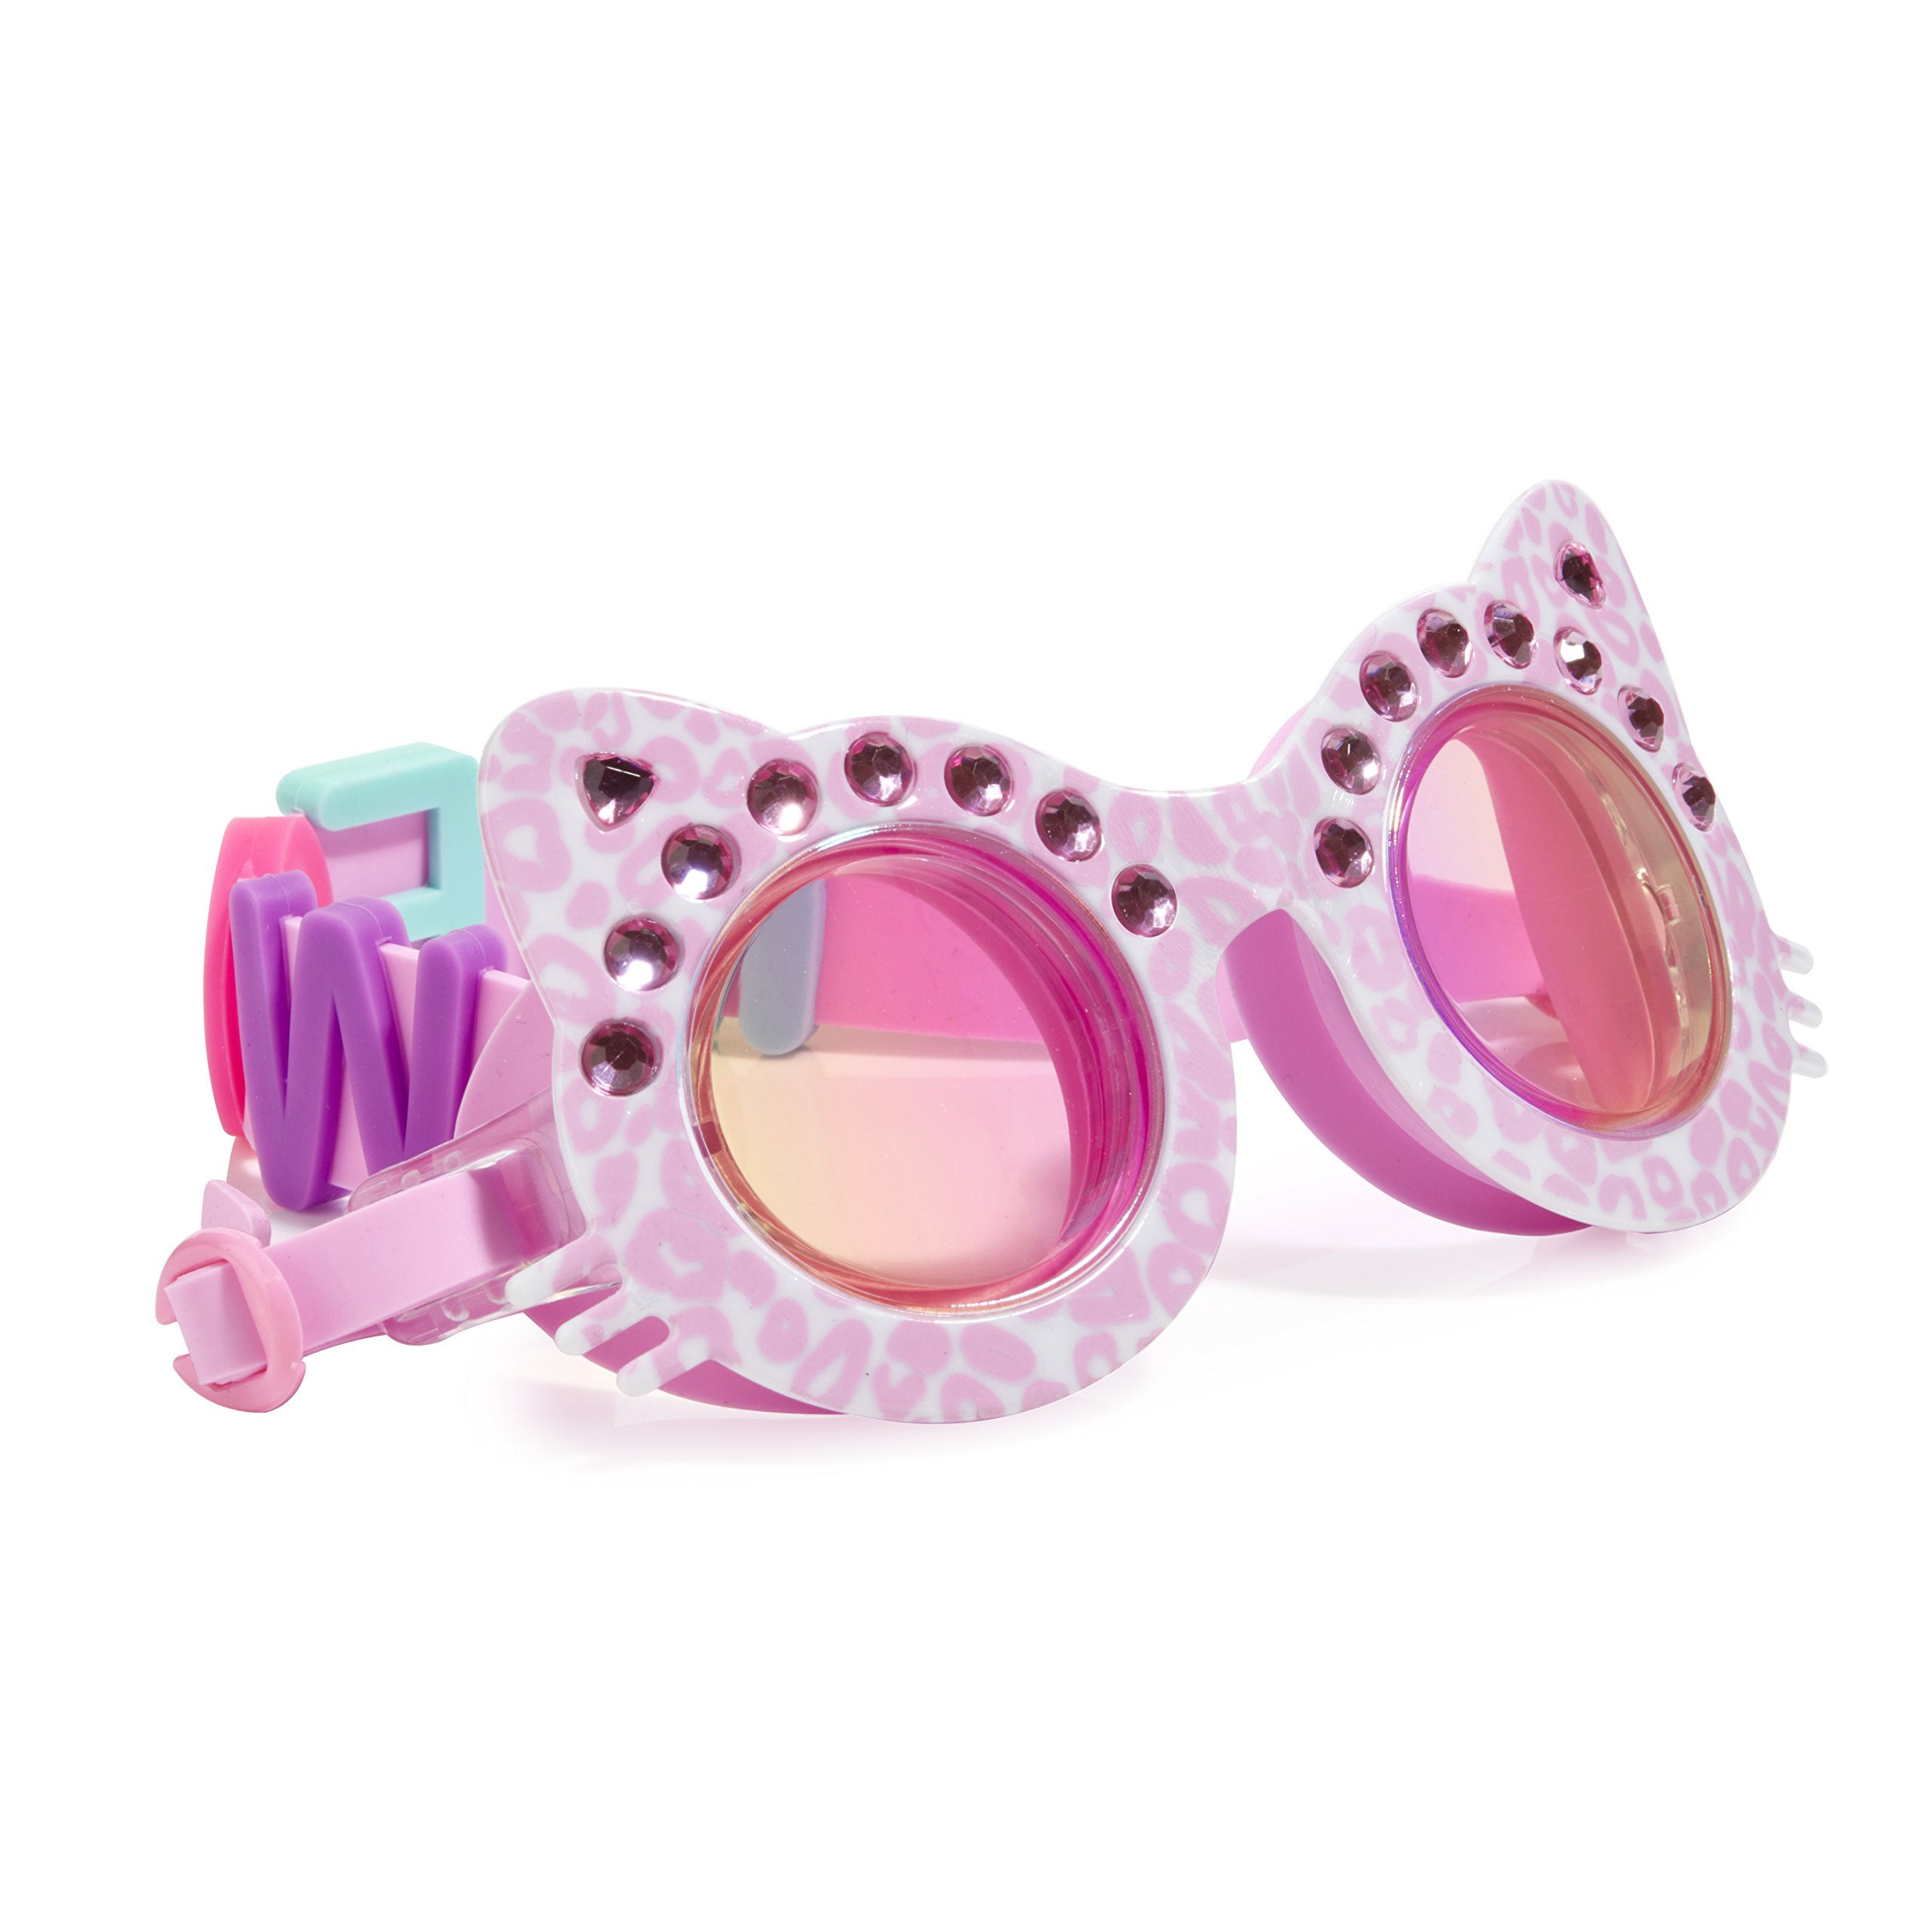 Cat Shaped Swimming Goggles For Kids by Bling2O - Anti Fog, No Leak, Non Slip and UV Protection - PurrFect Pink Colored Fun Water Accessory Includes Hard Case